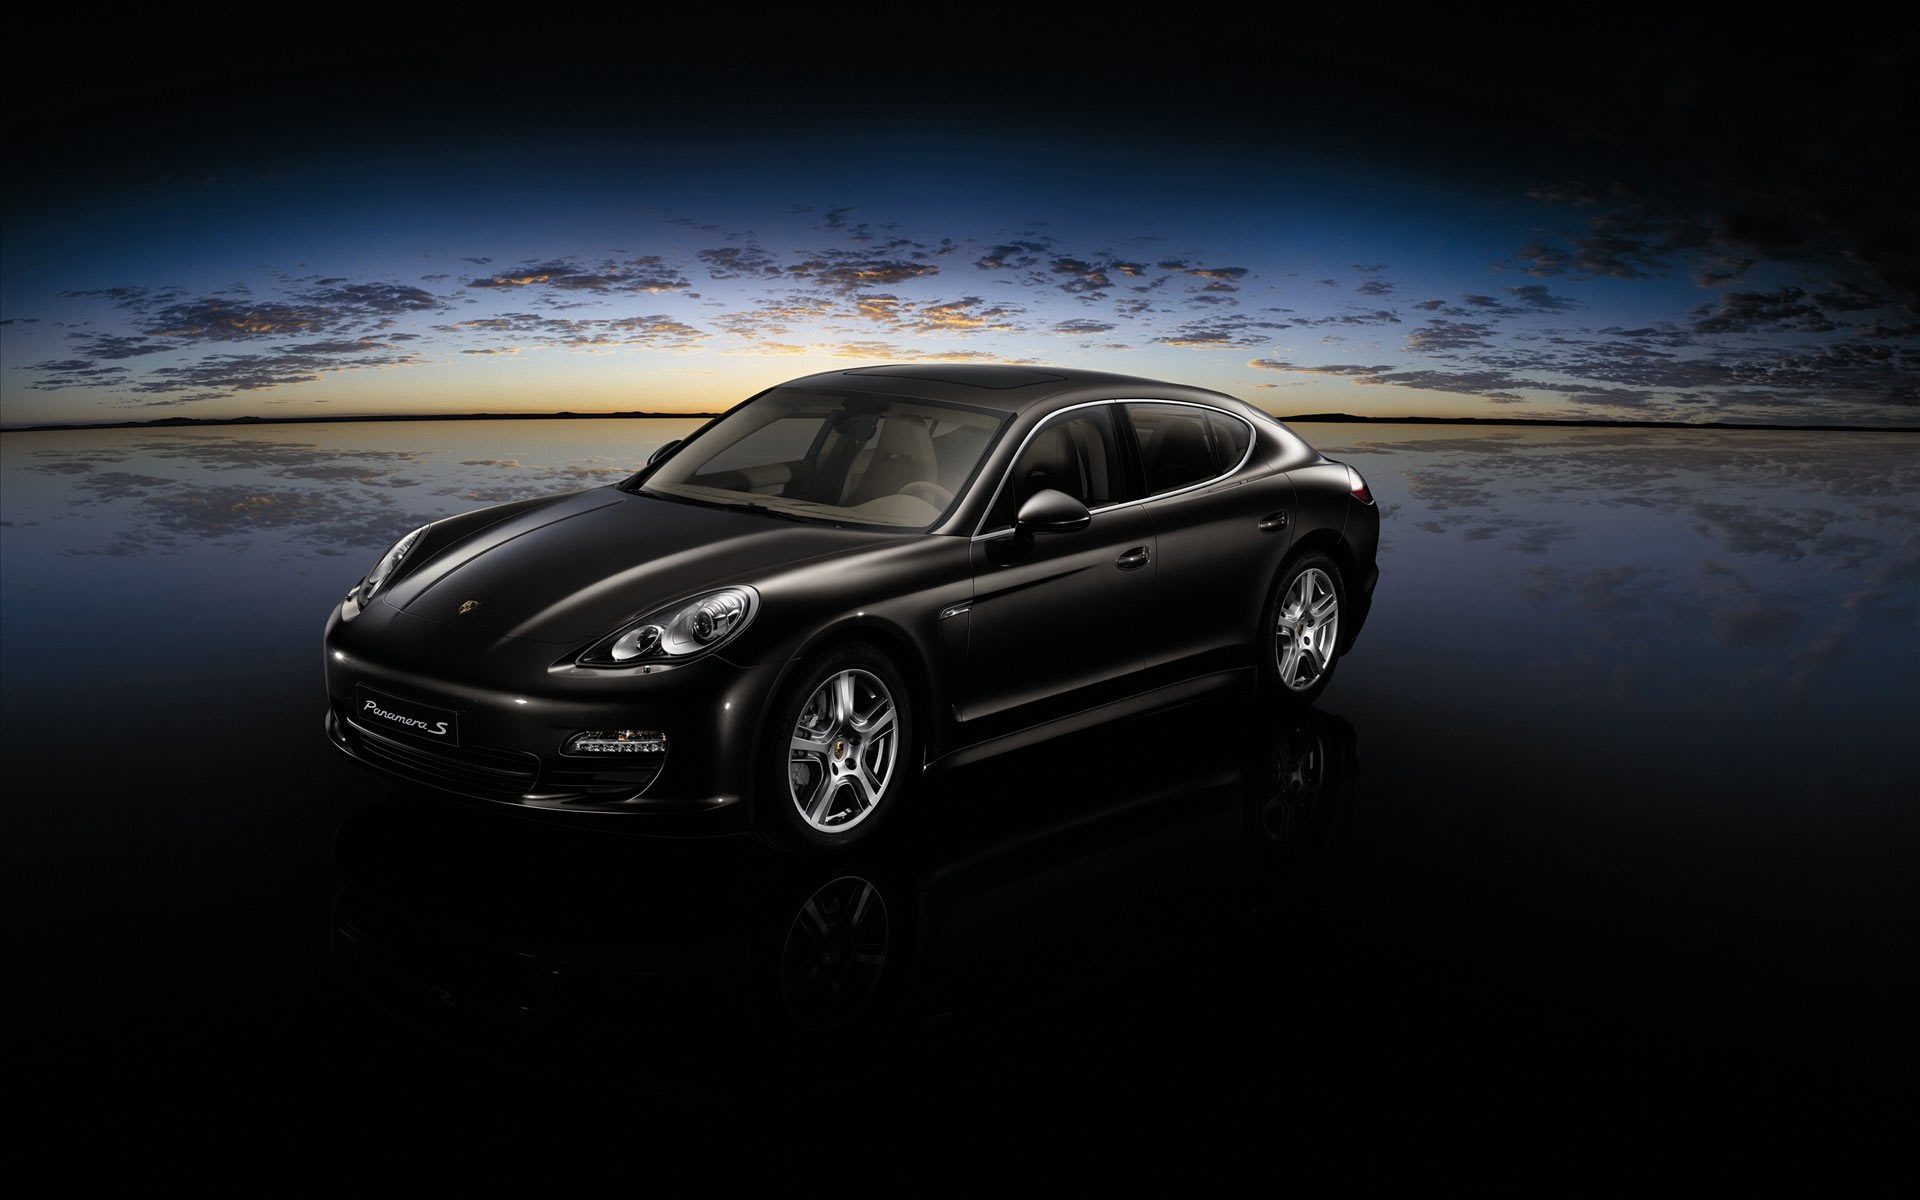 45 Porsche Panamera HD Wallpapers